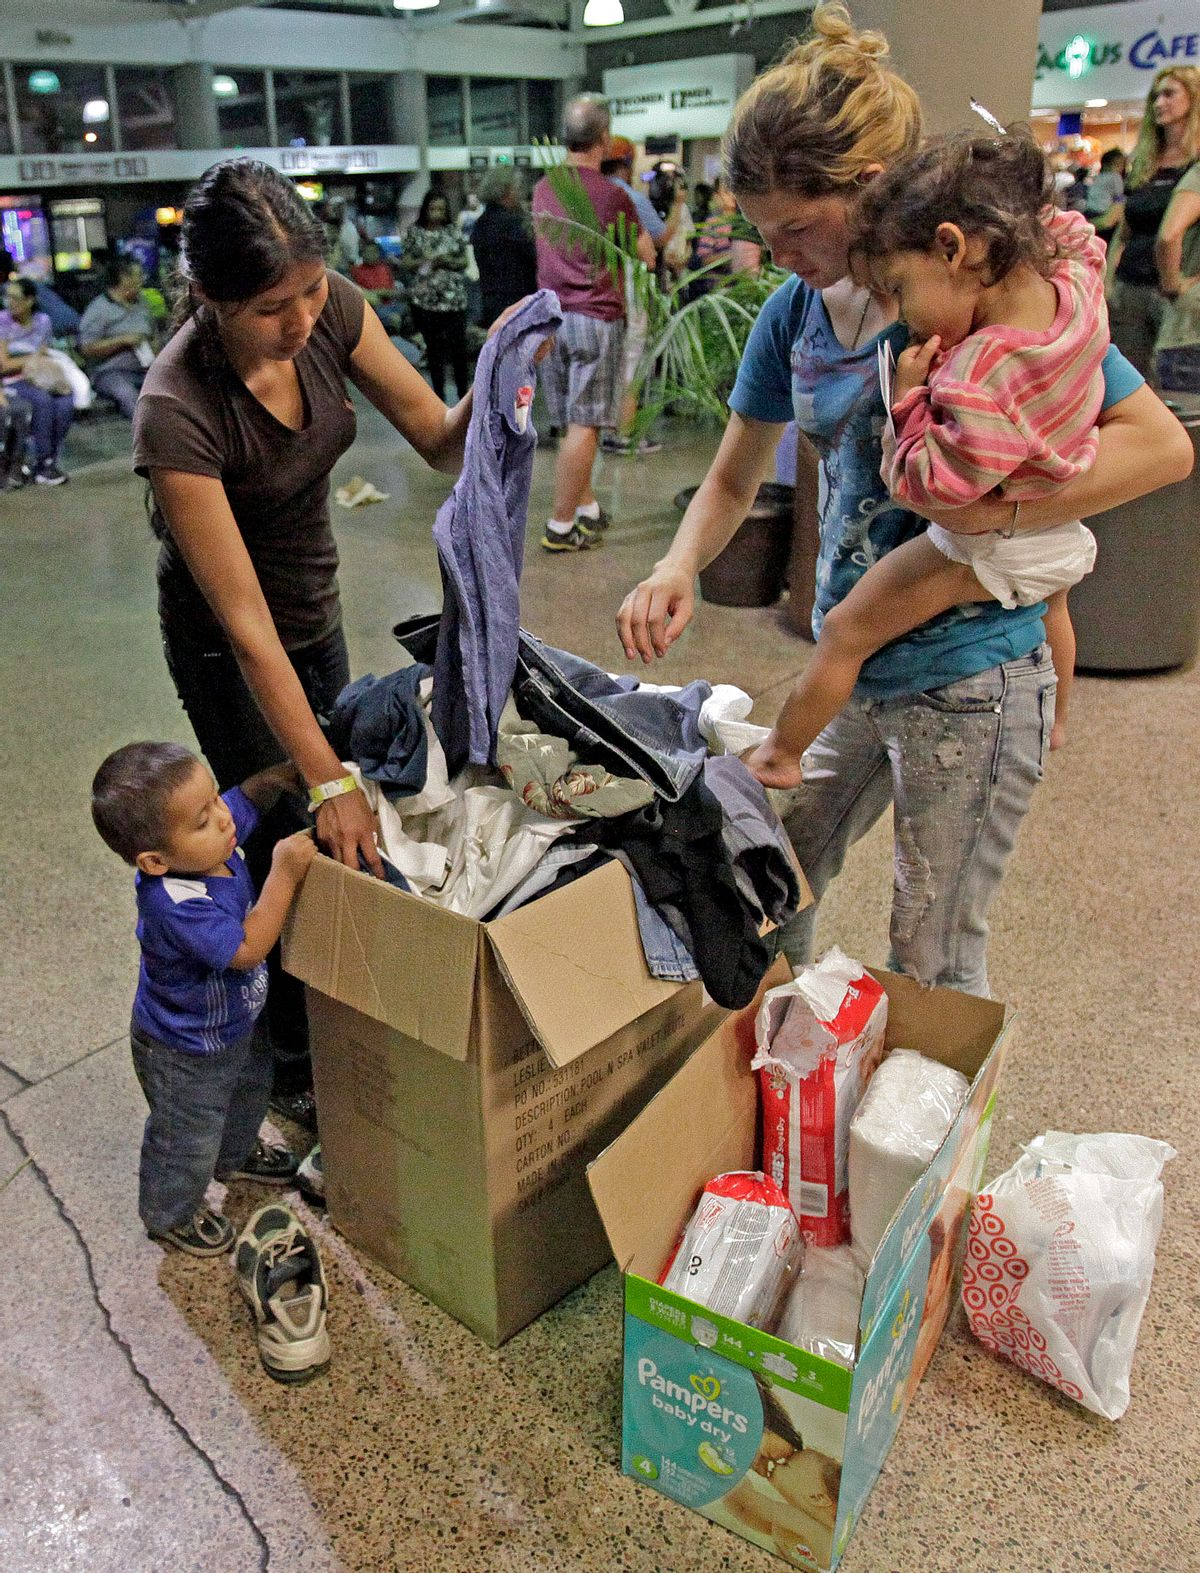 Women and children look through a box of cloths that were donated by volunteers at the Greyhound bus terminal, Thursday, May 29, 2014 in Phoenix.  About 400 mostly Central American women and children caught crossing from Mexico into south Texas were flown to Arizona this weekend after border agents there ran out of space and resources.  Officials then dropped hundreds of them off at Phoenix and Tucson Greyhound stations, overwhelming the stations and humanitarian groups who were trying to help. (AP Photo/Rick Scuteri) (AP)